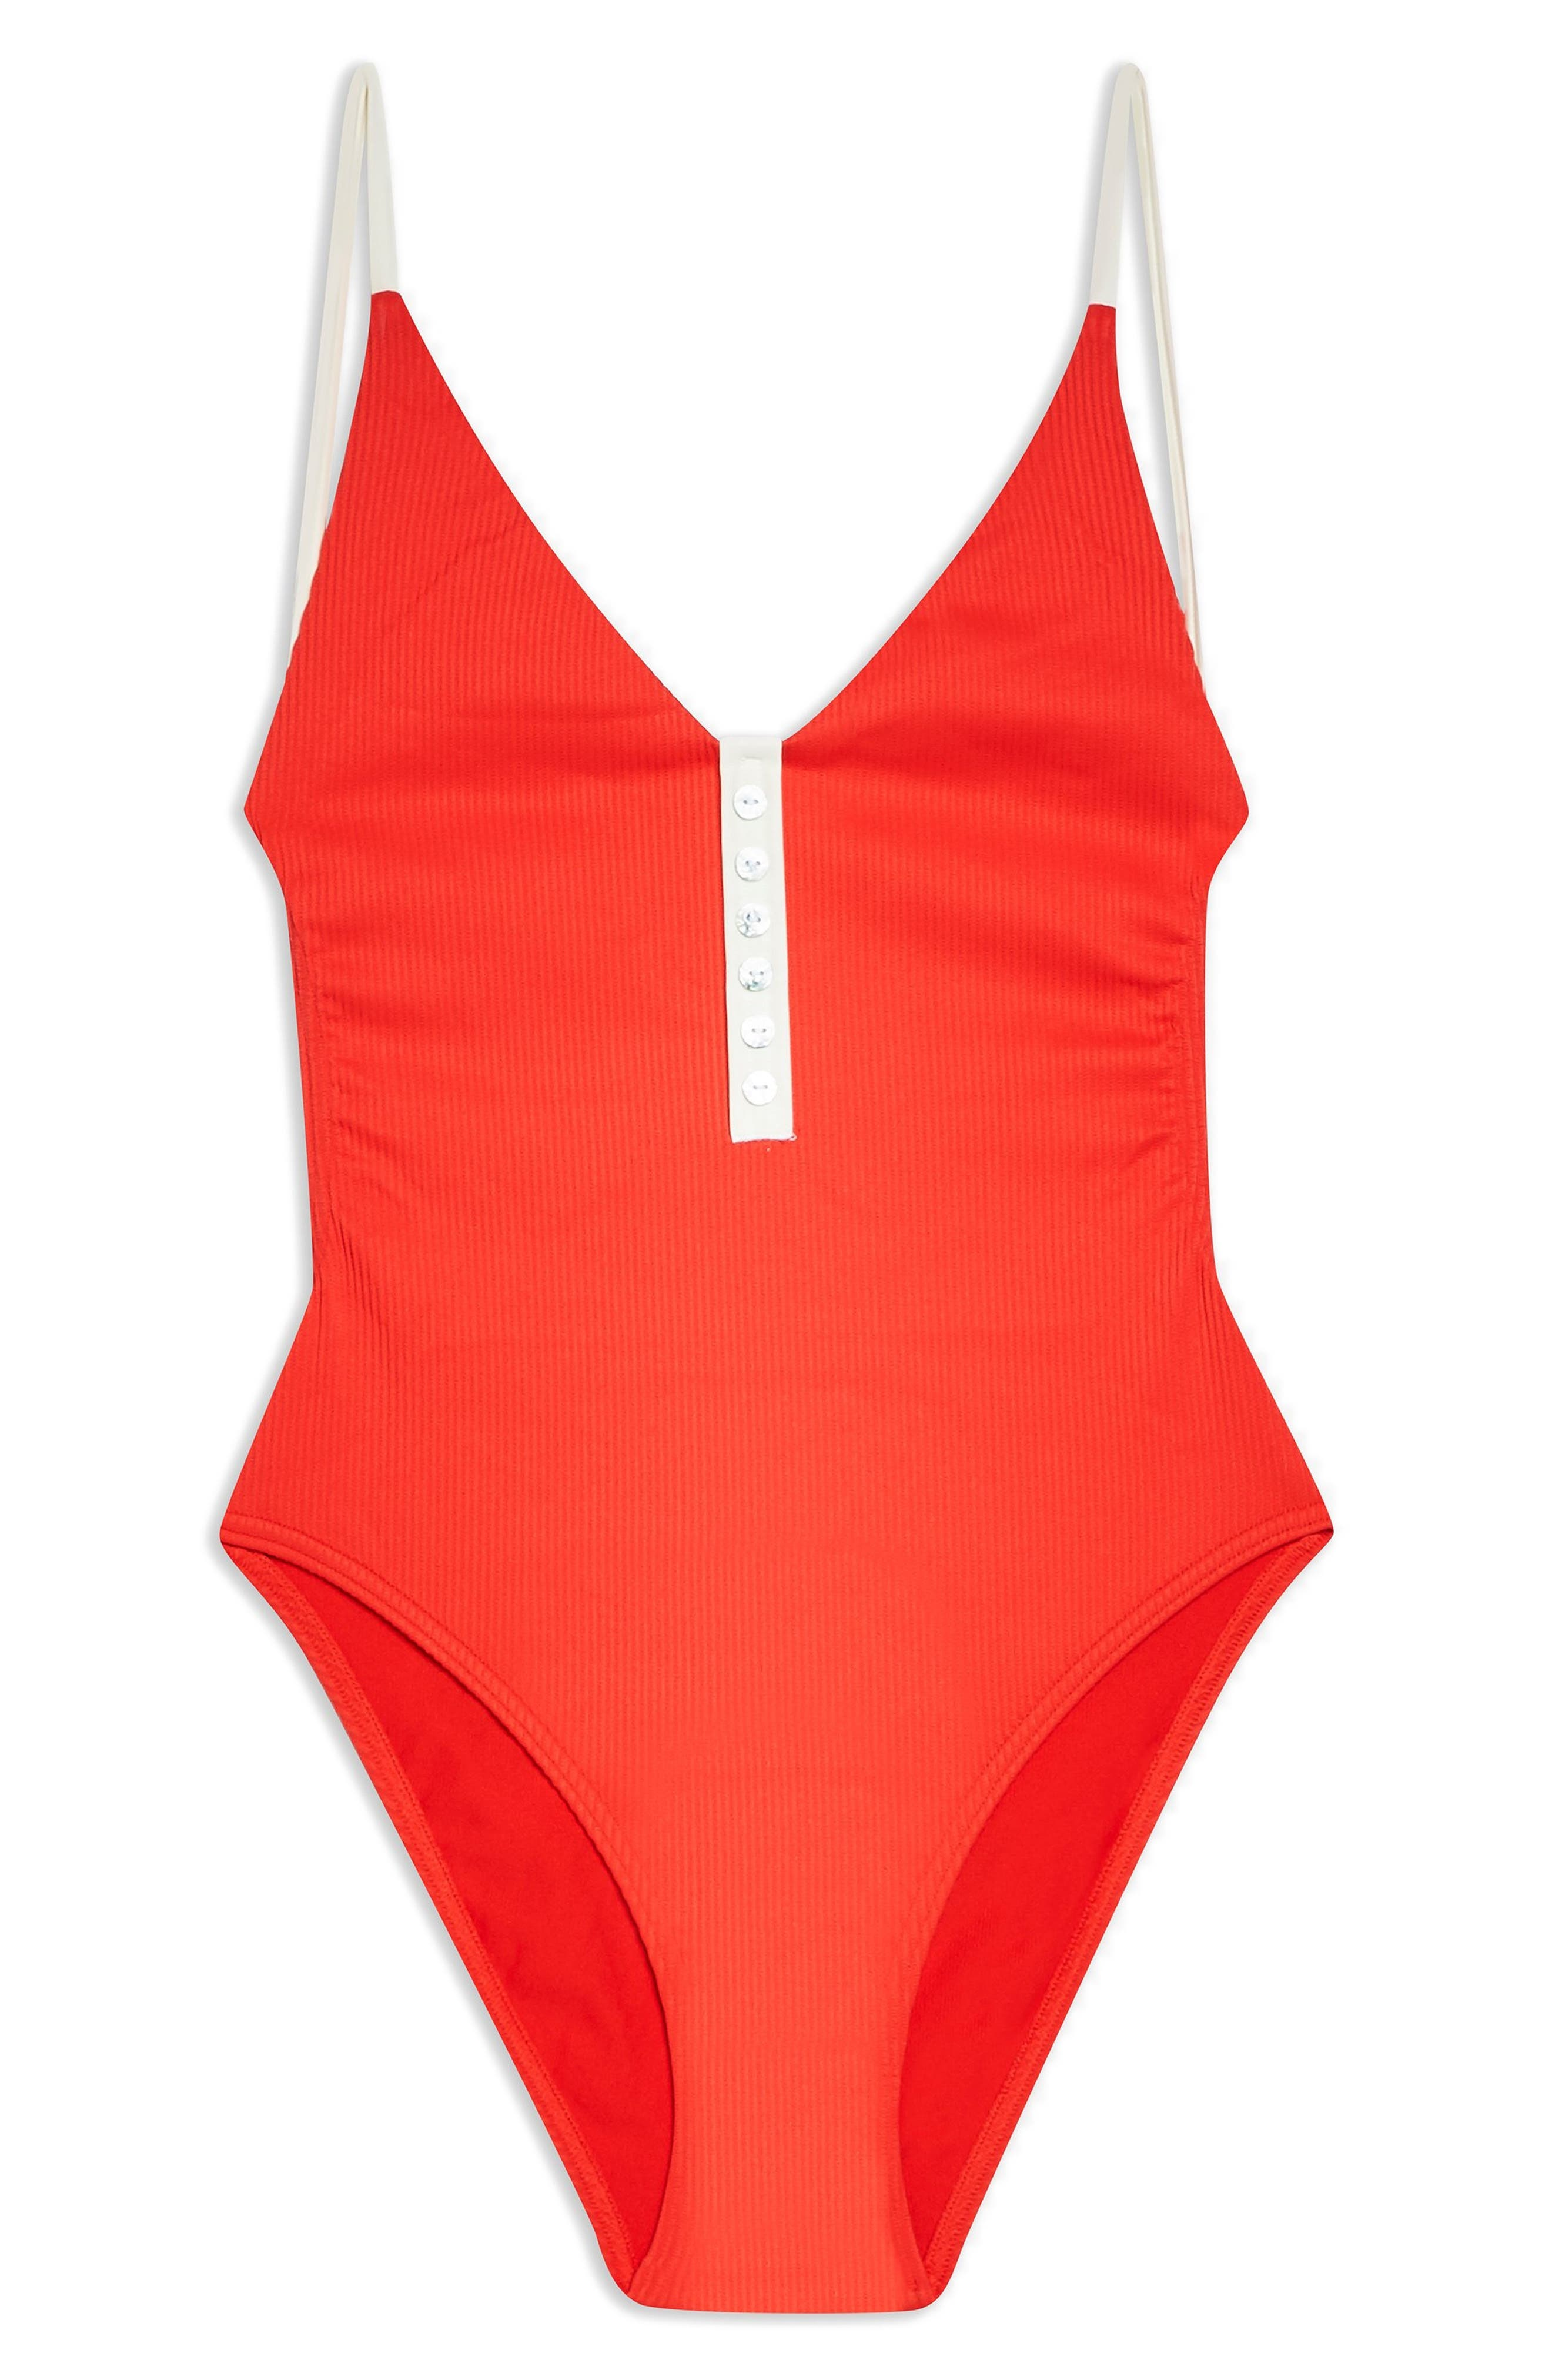 60s Swimsuits, 70s Bathing Suits | Retro Swimwear Womens Topshop Pamela Button Ribbed One-Piece Swimsuit $52.00 AT vintagedancer.com